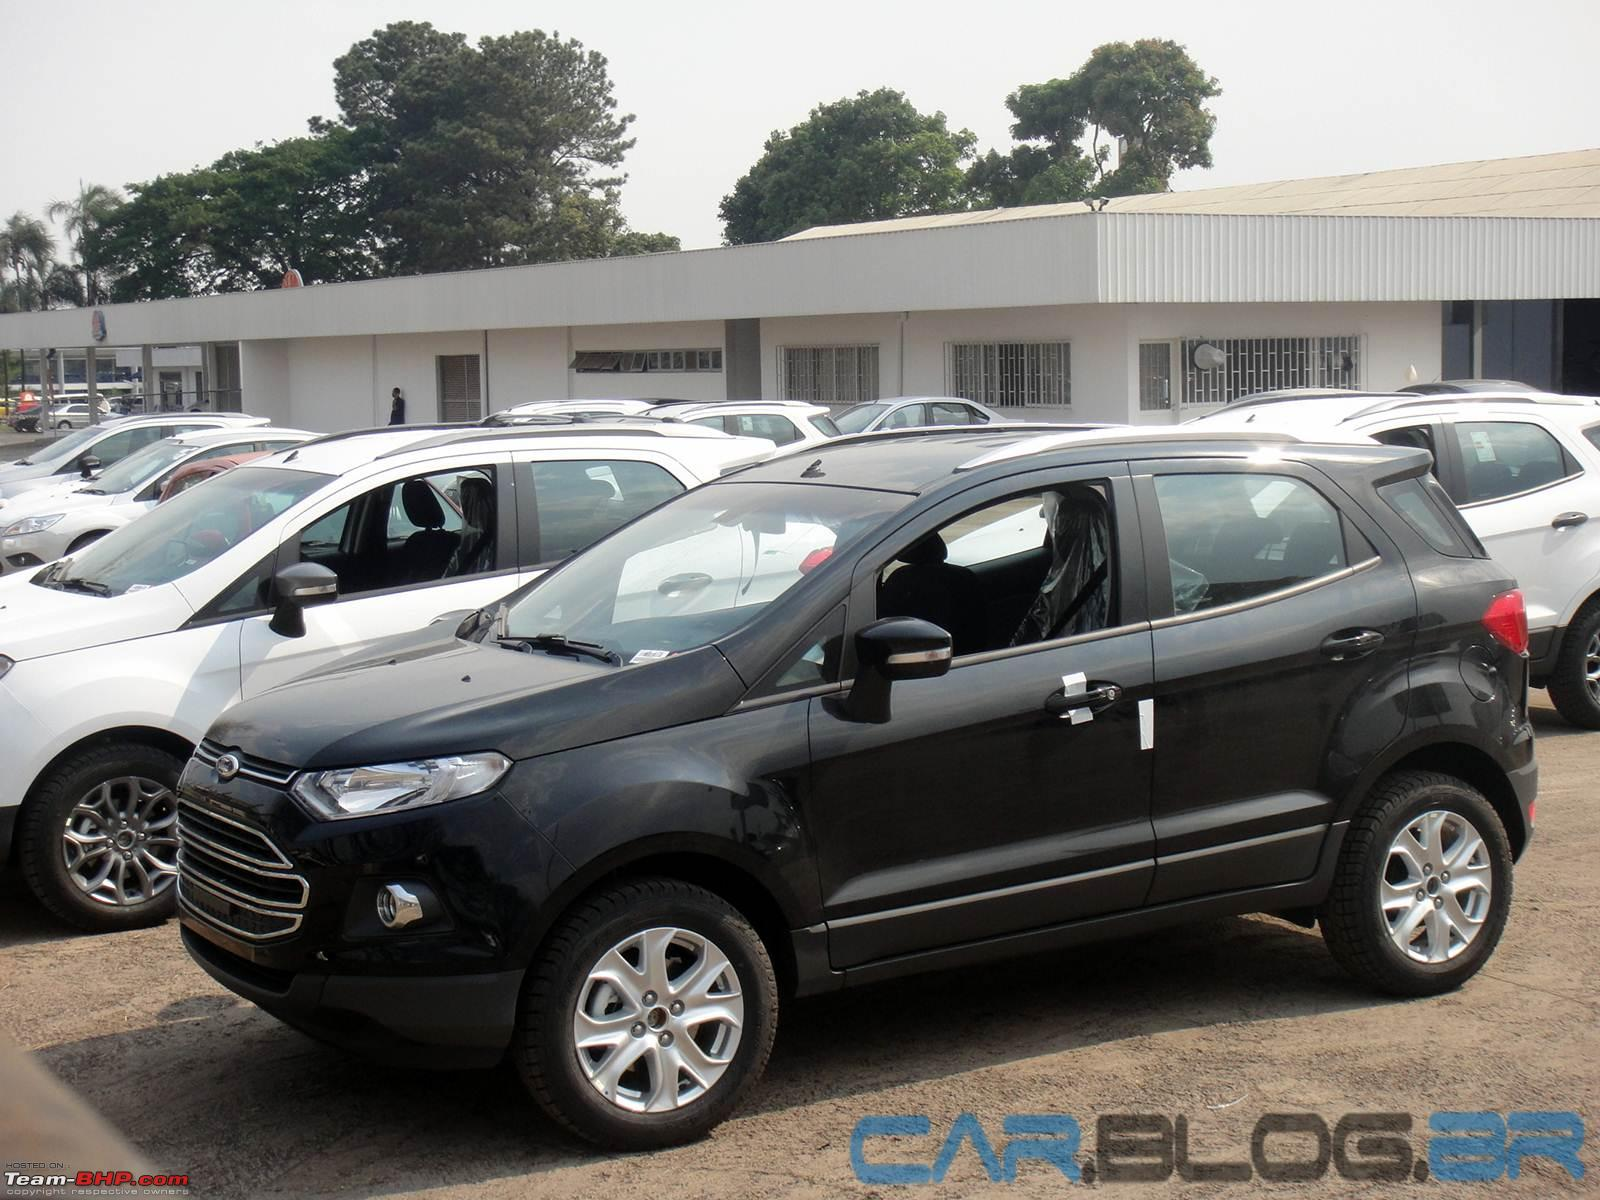 Ford ecosport preview auto expo 2012 edit indian spy pics on pg